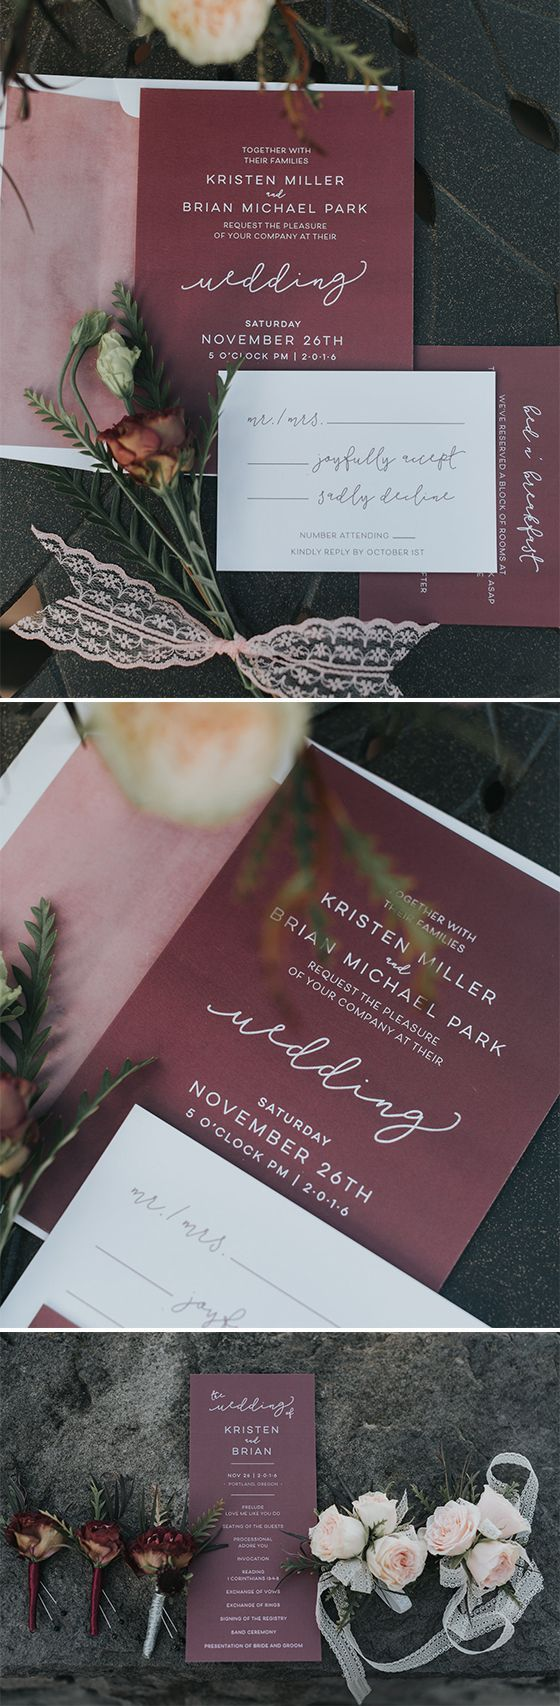 wedding invitation rsvp what does m mean%0A Romantic burgundy and pink wedding invitation suite